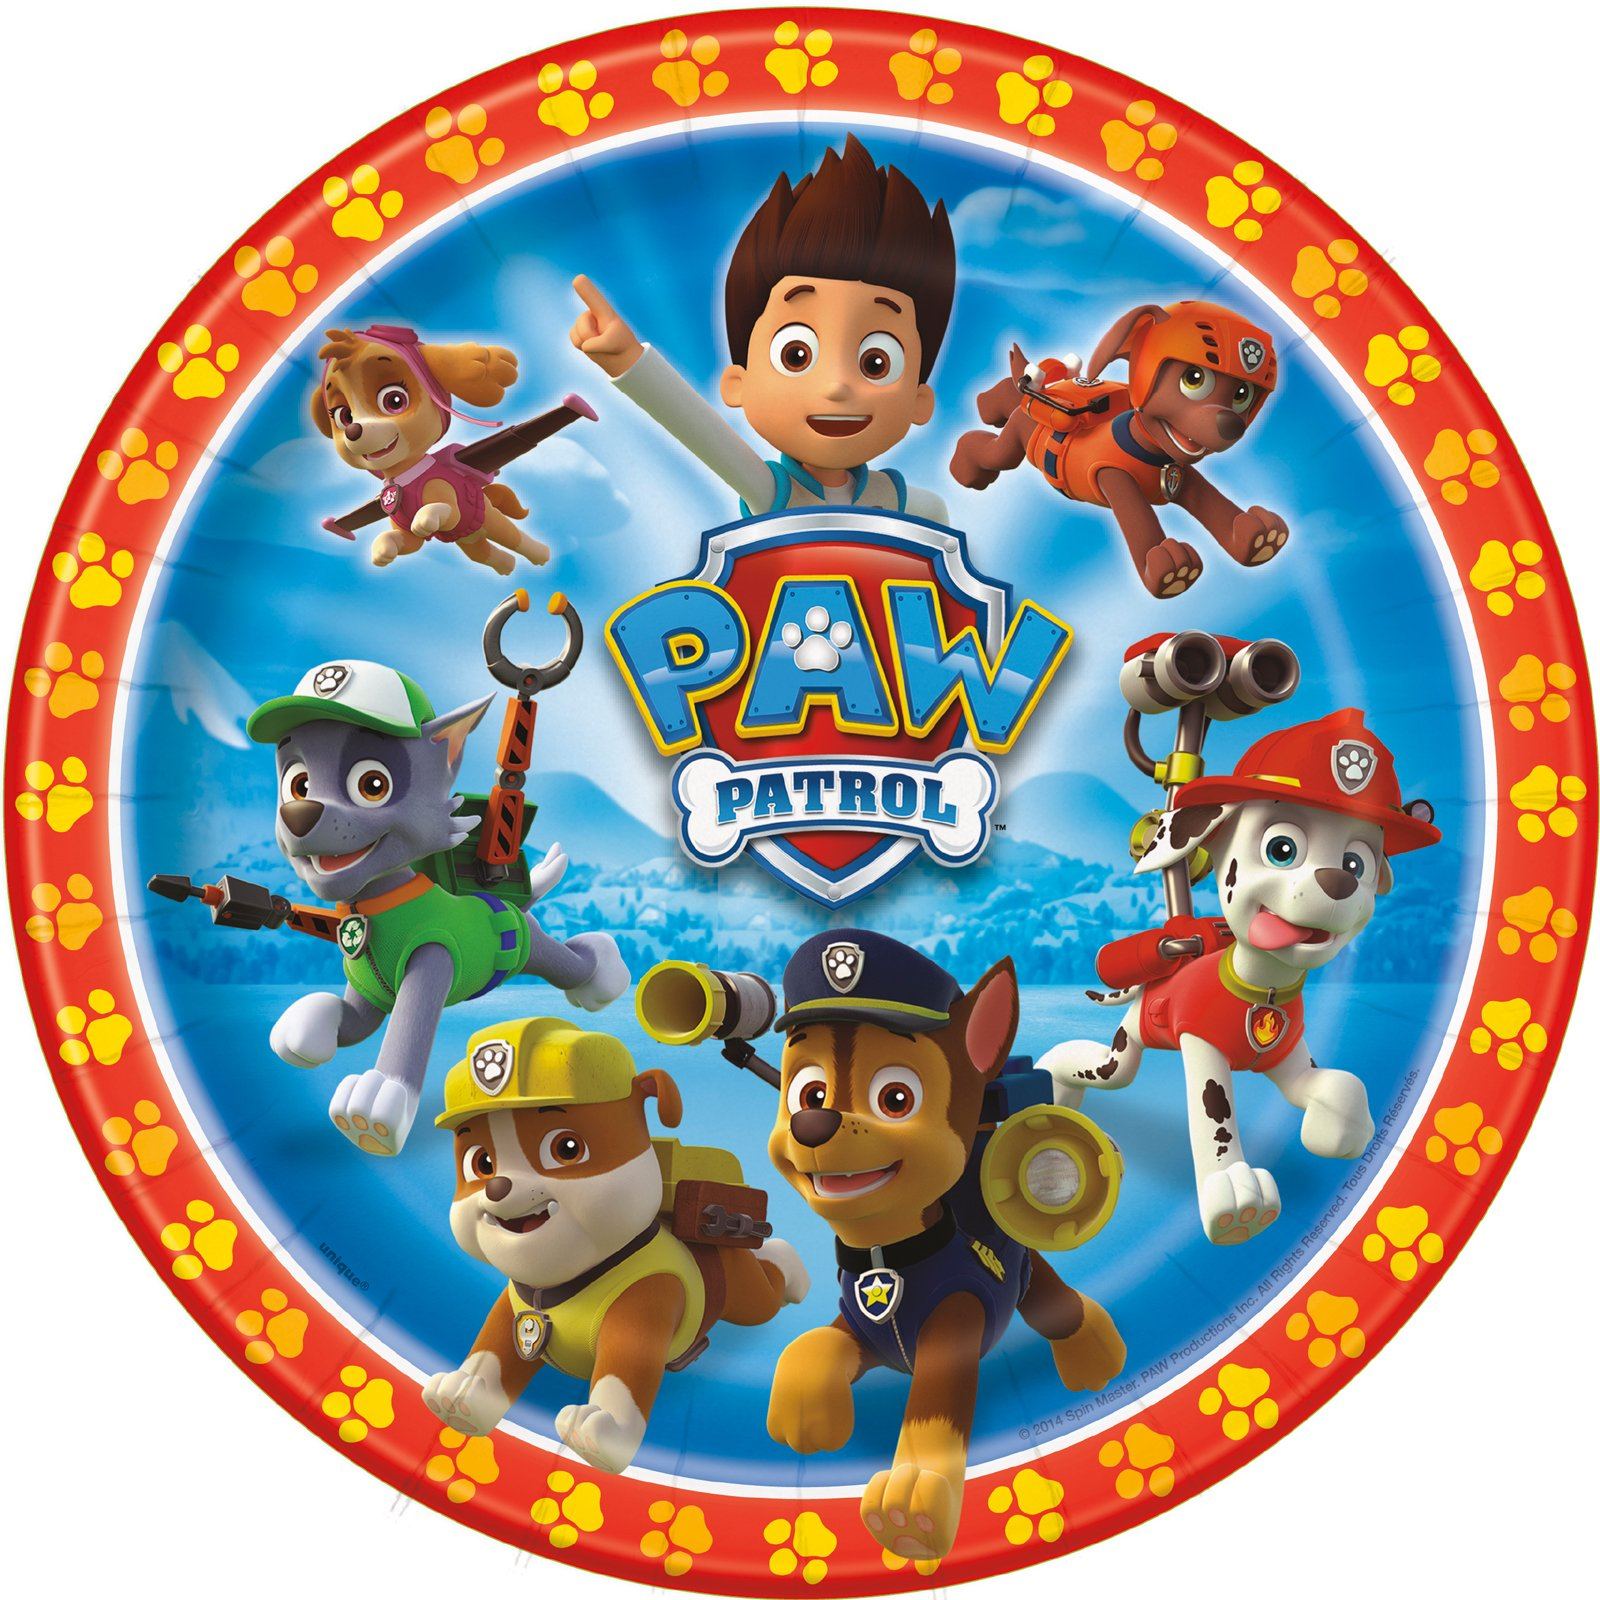 Paw patrol clipart free picture transparent library 48 Paw Patrol Images Pictures picture transparent library